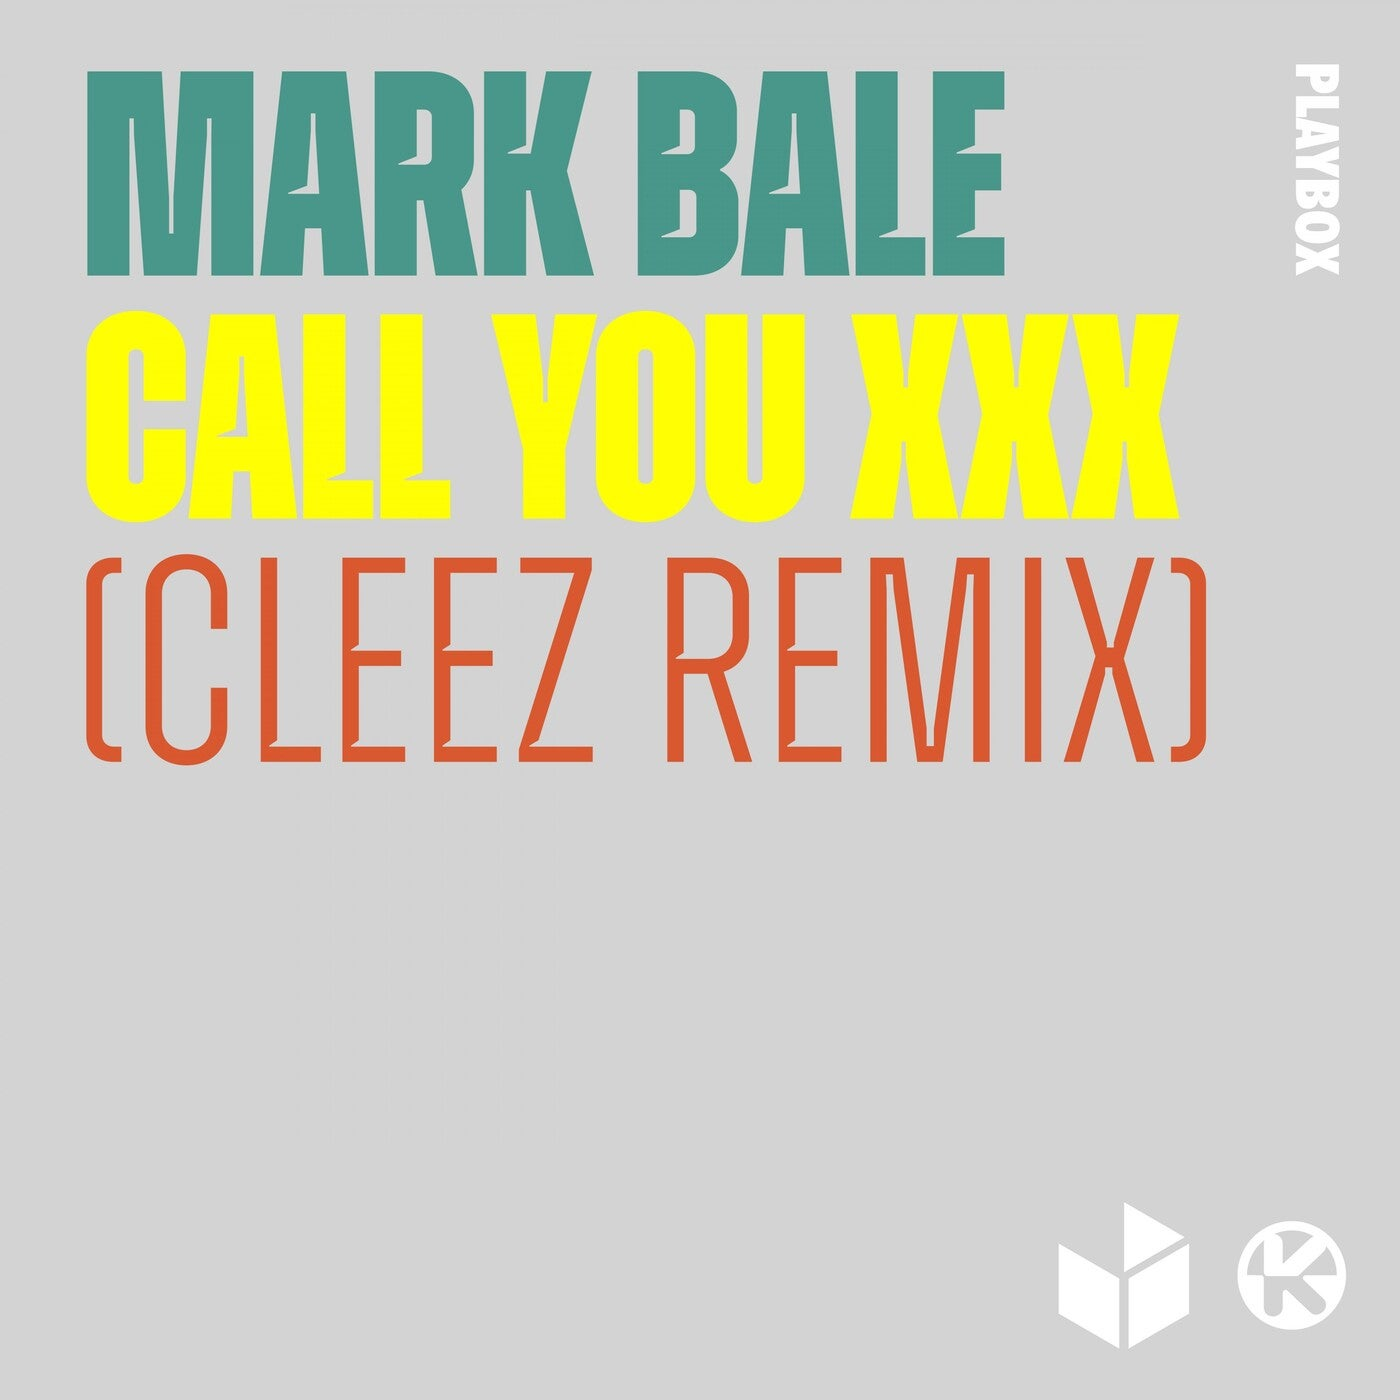 Call You XXX (Cleez Extended Remix)